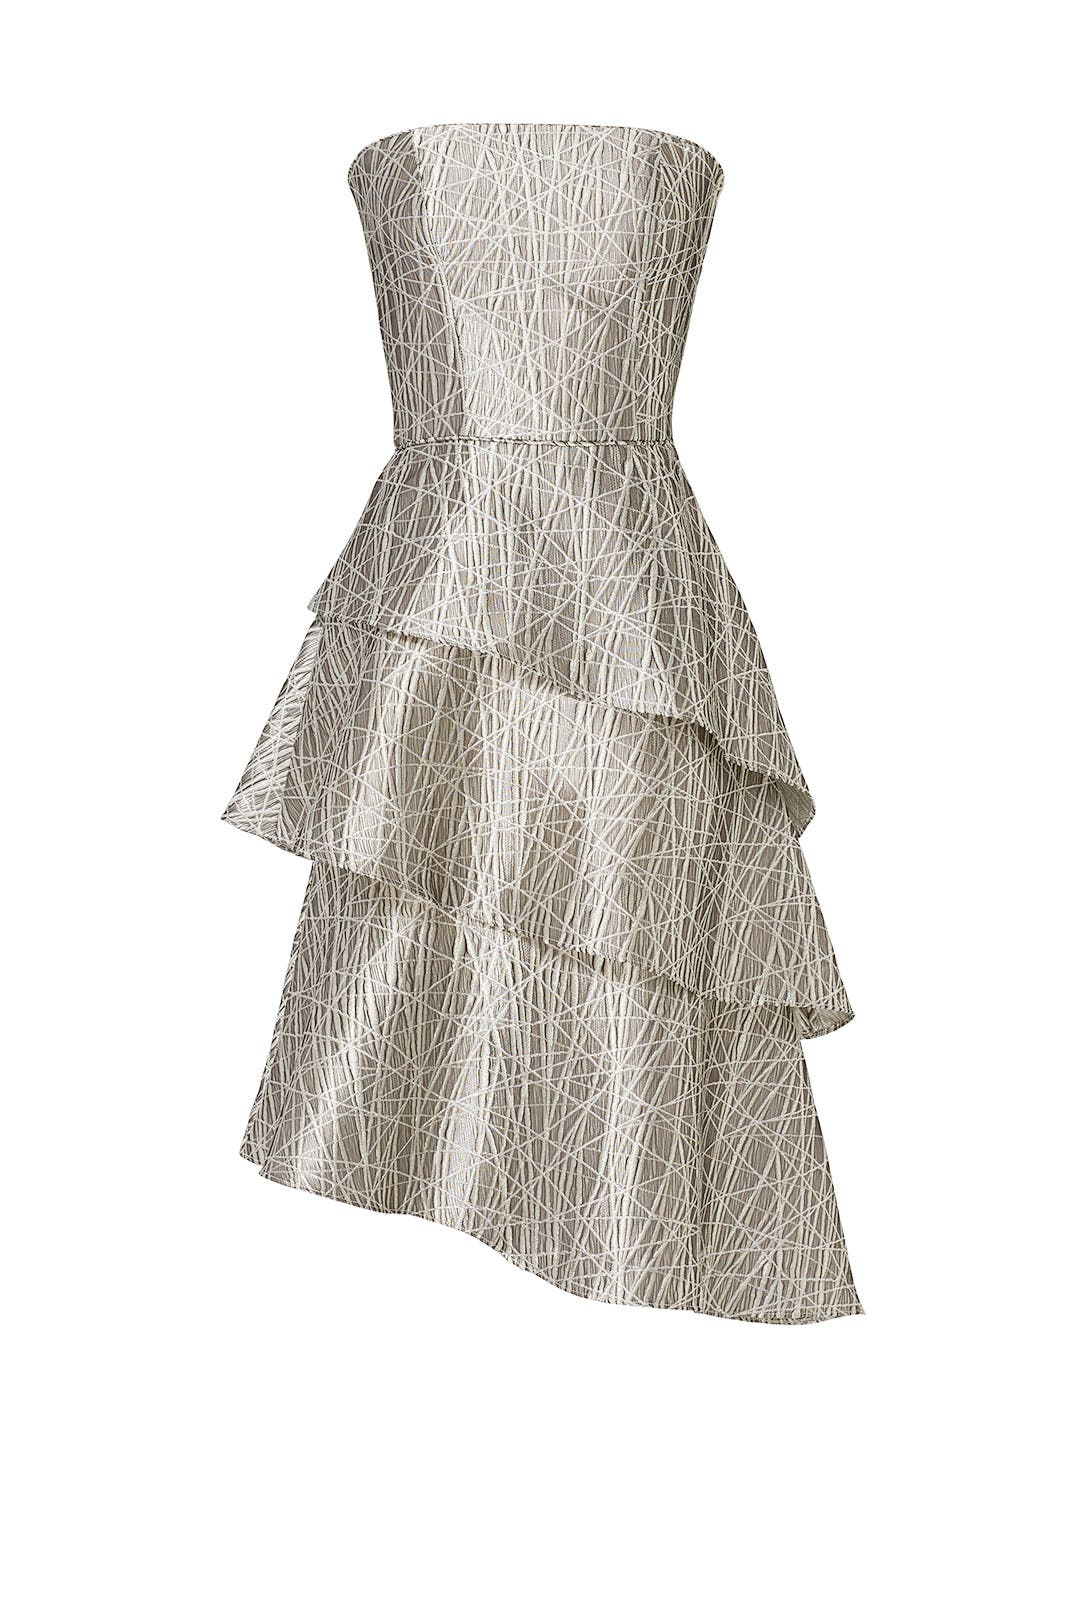 Ava Maria Cocktail Dress by MASON HOSKER for $95 - $110 | Rent the ...